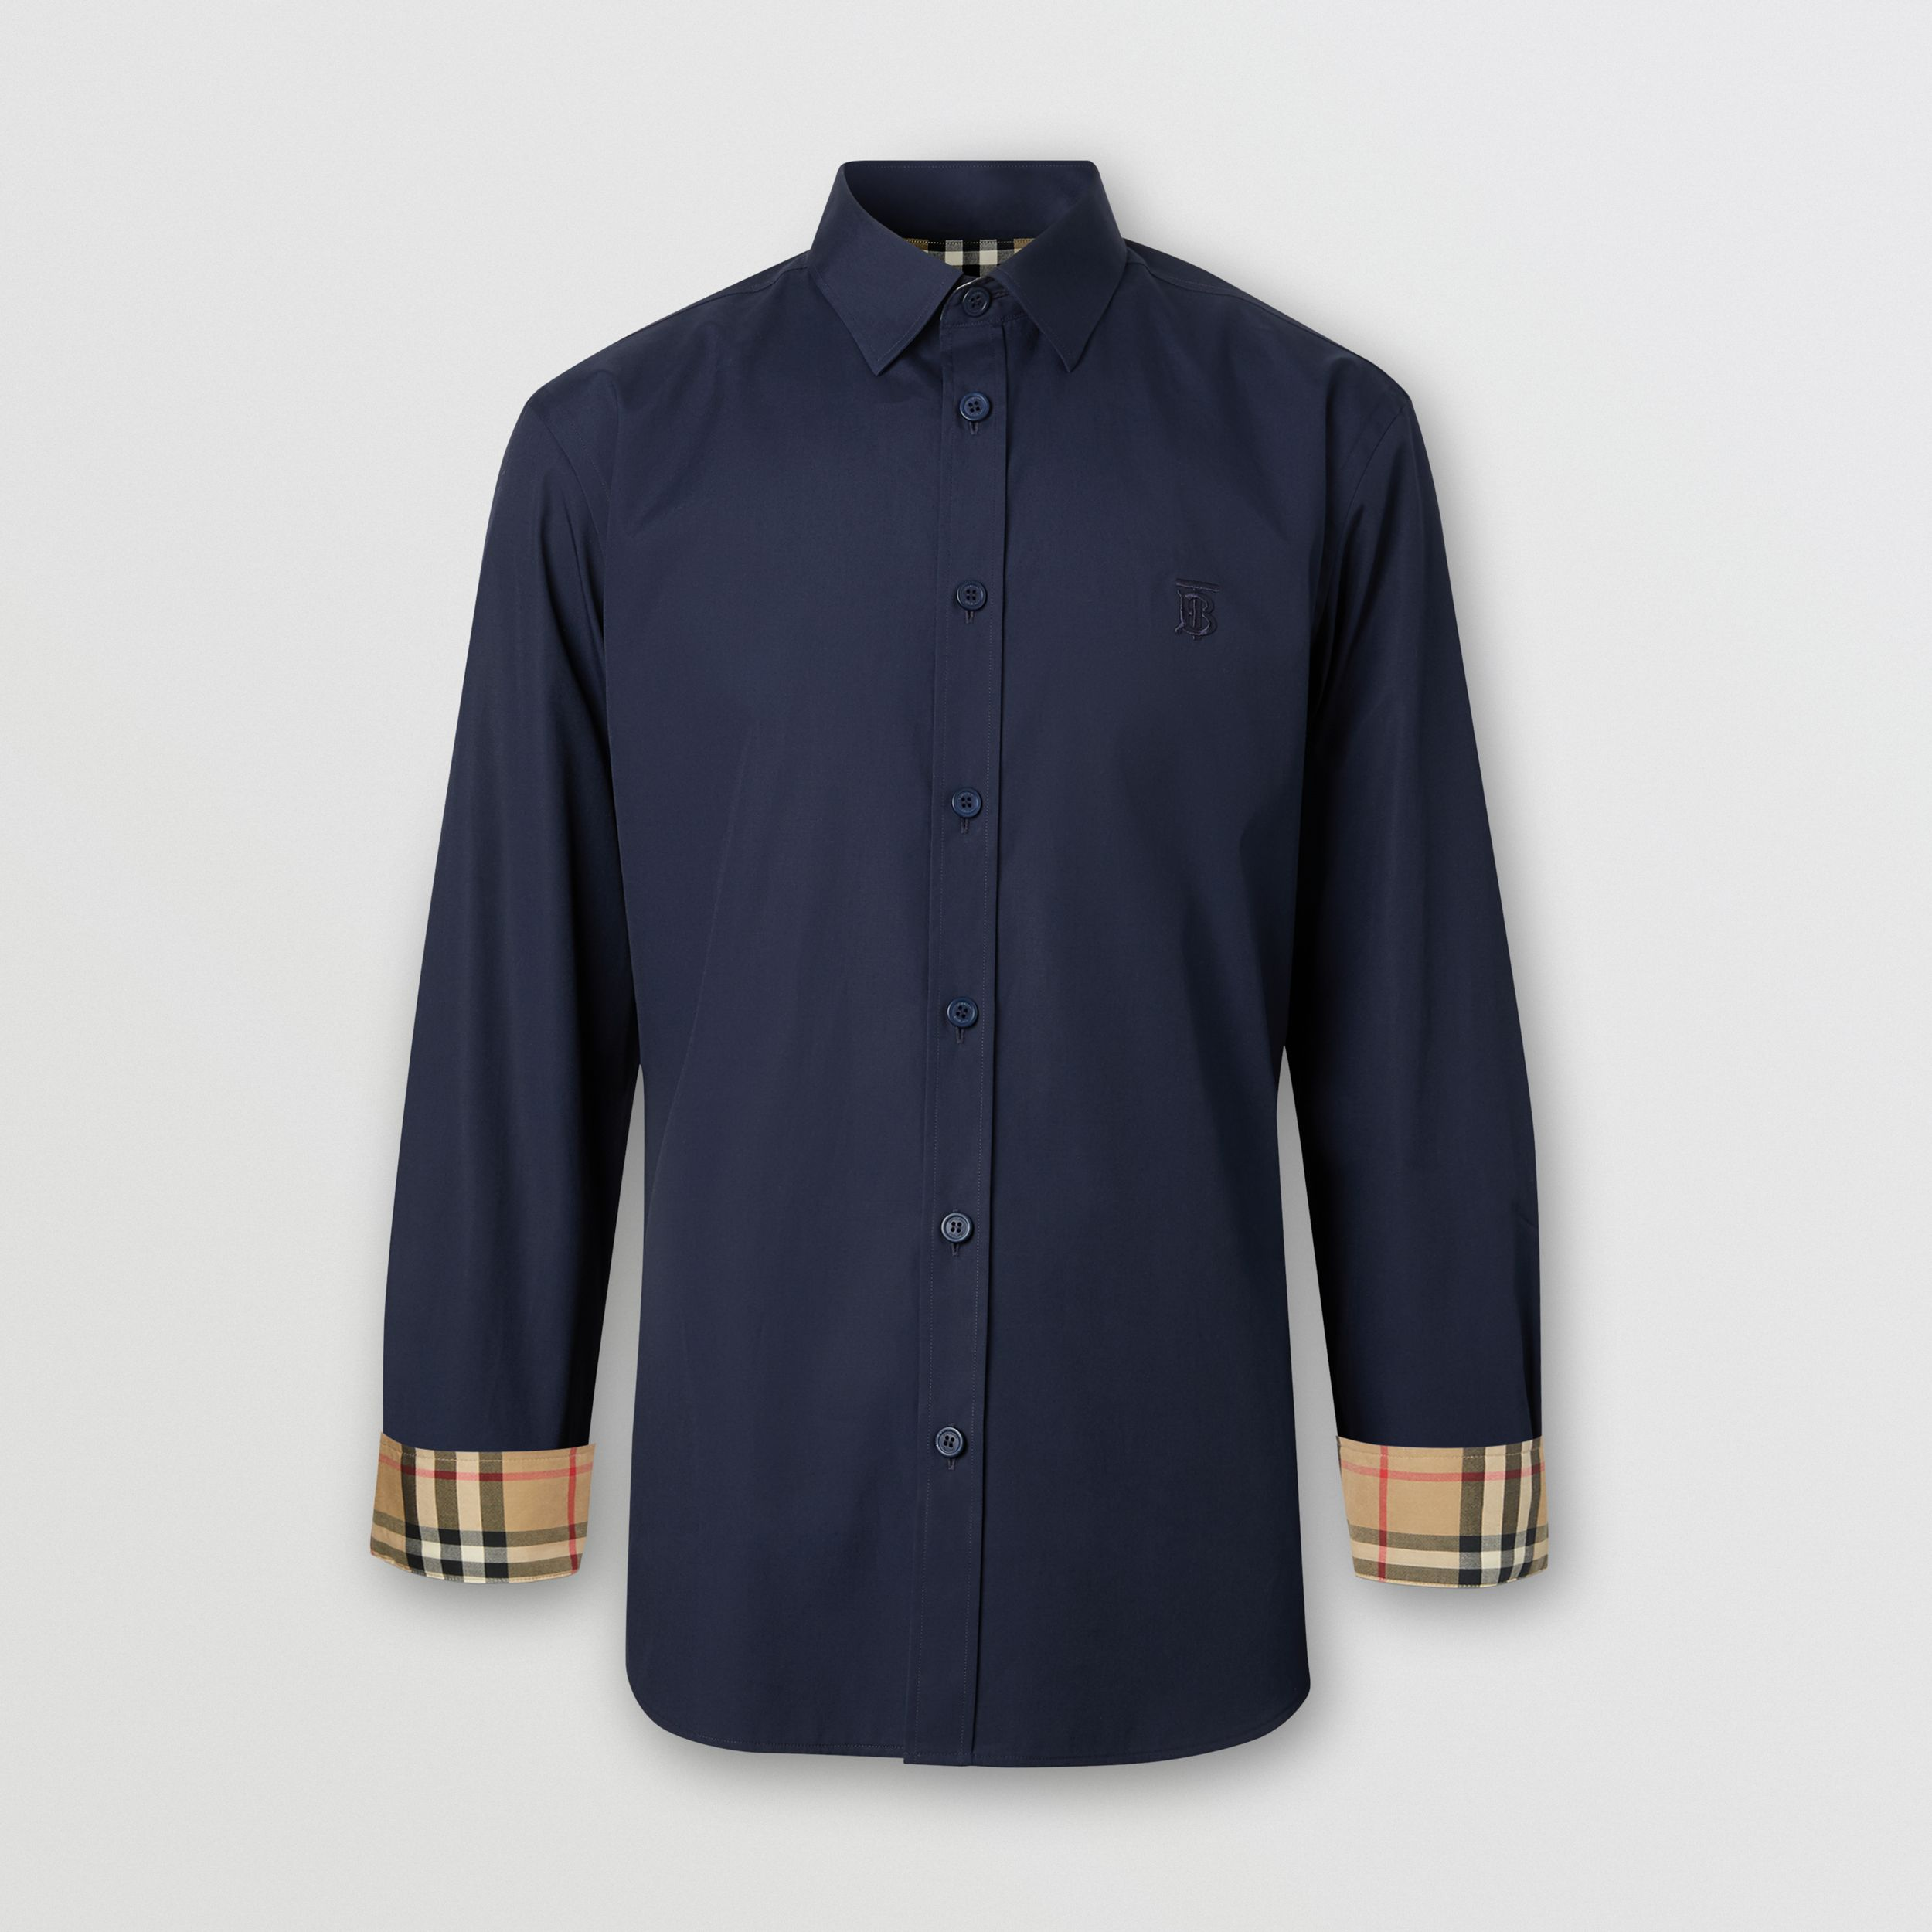 Slim Fit Monogram Motif Stretch Cotton Poplin Shirt in Navy - Men | Burberry Hong Kong S.A.R. - 4